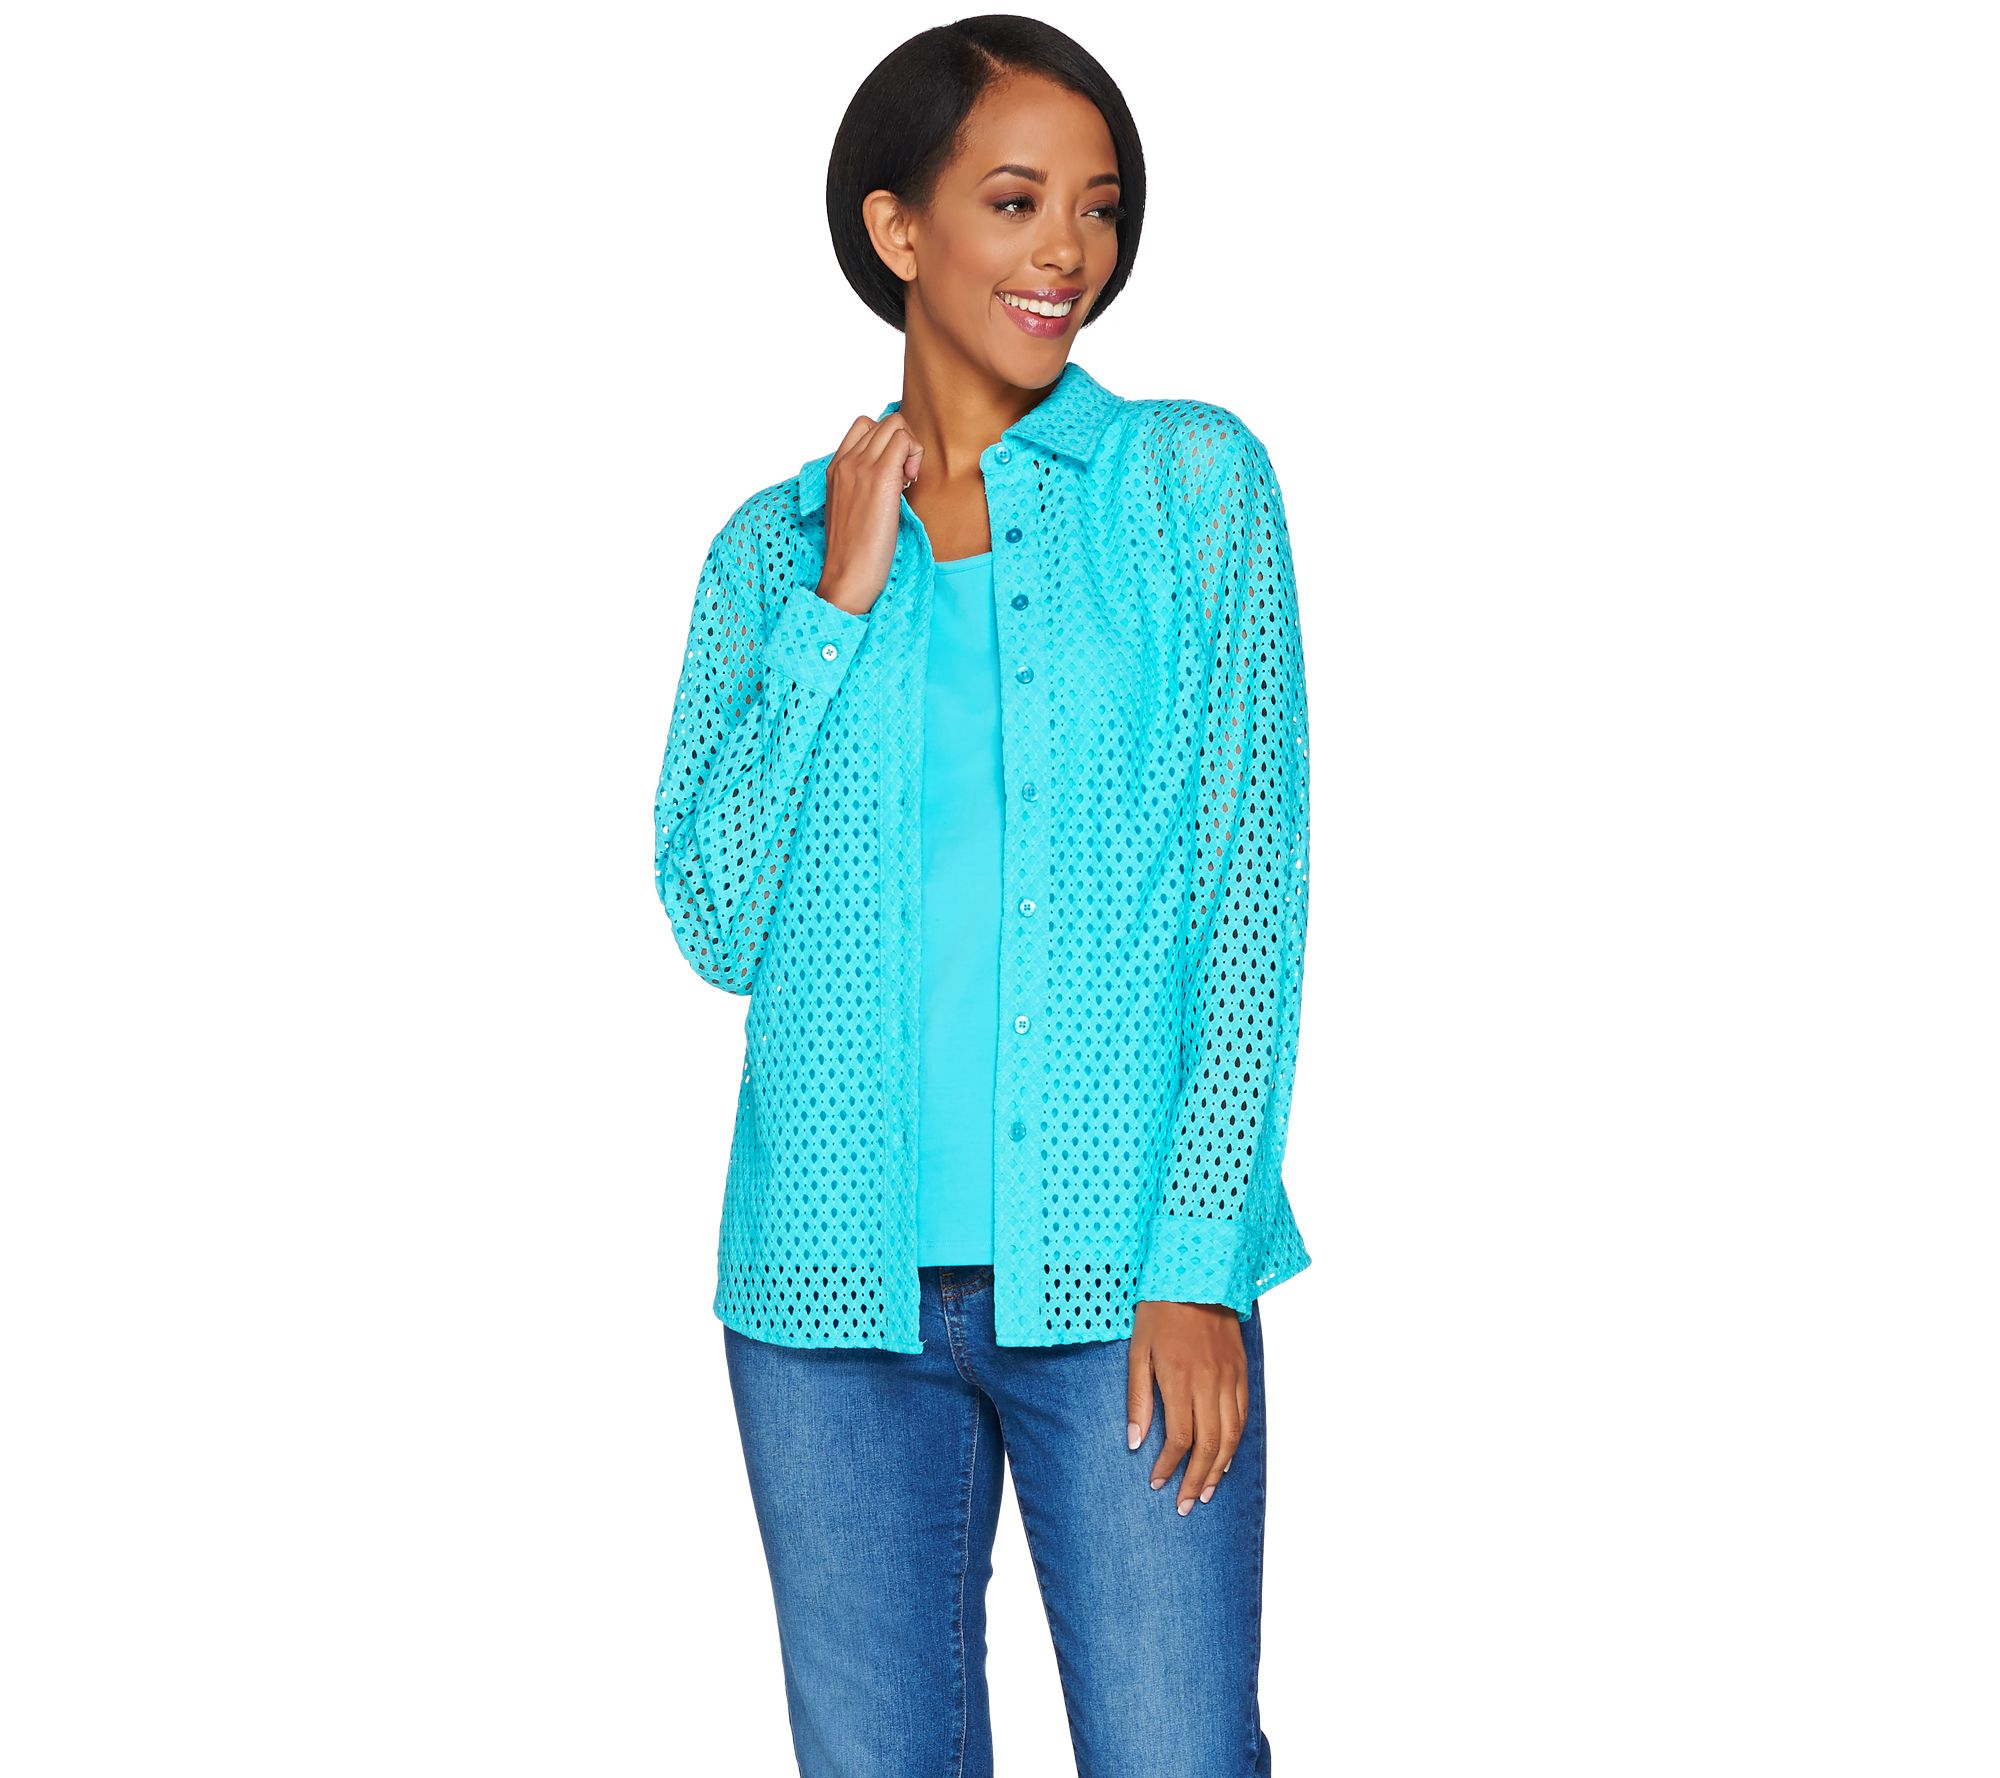 world-wide free shipping look out for the best Qvc Denim And Co Shirts - DREAMWORKS